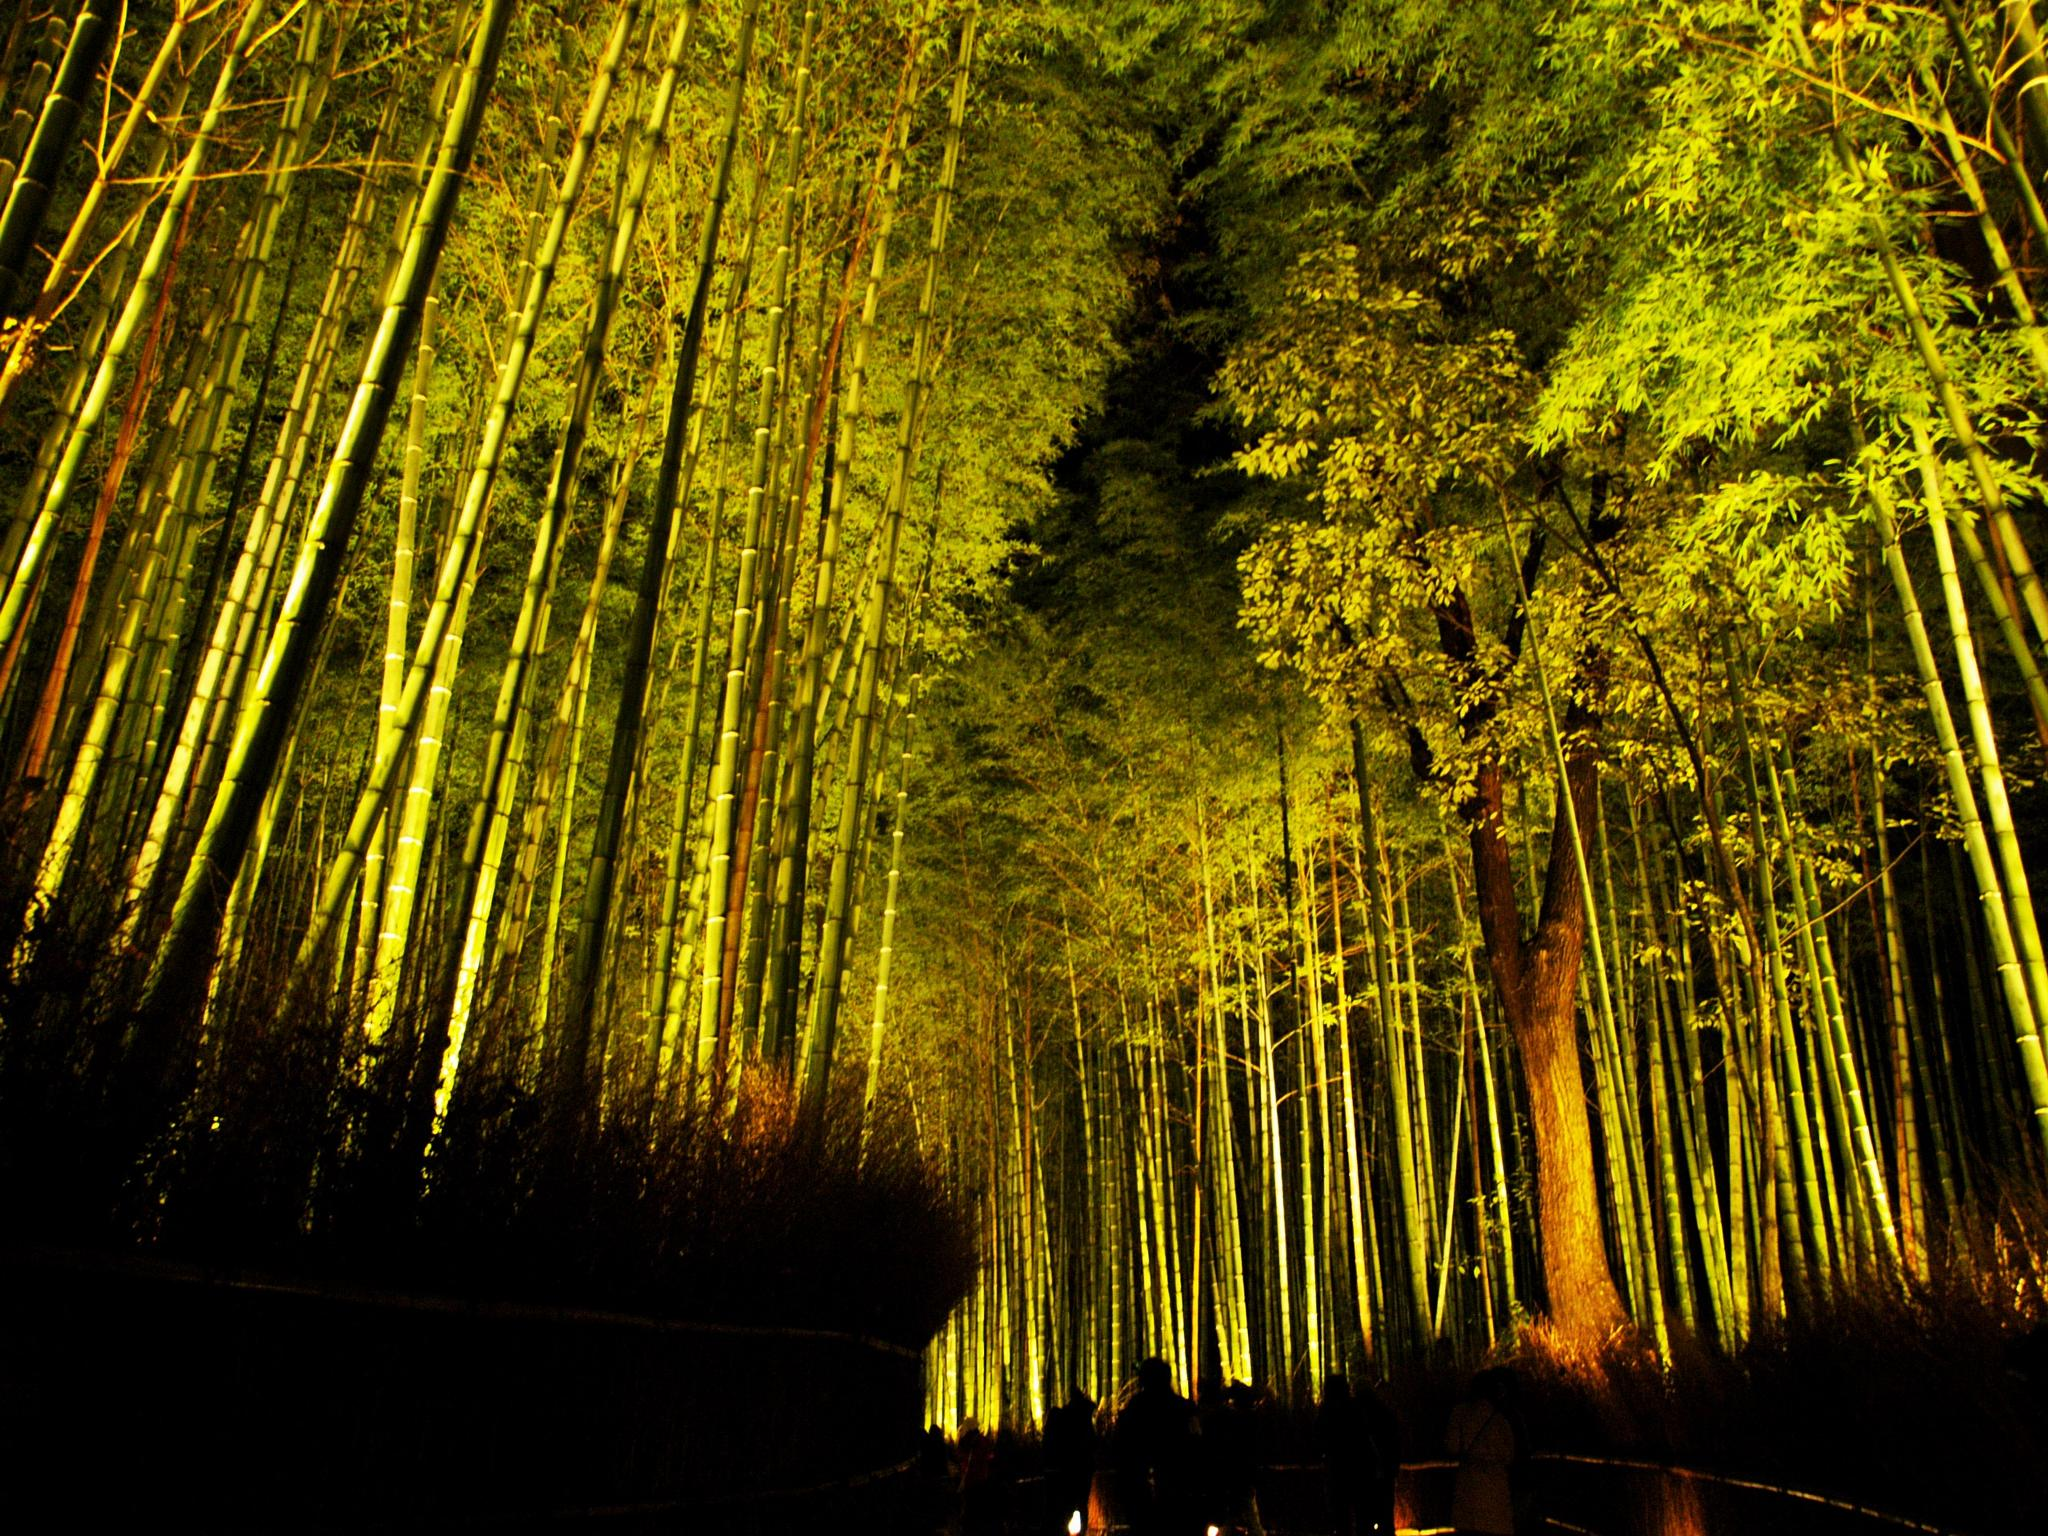 Road of Kyoto Sagano bamboo forest by SANRI